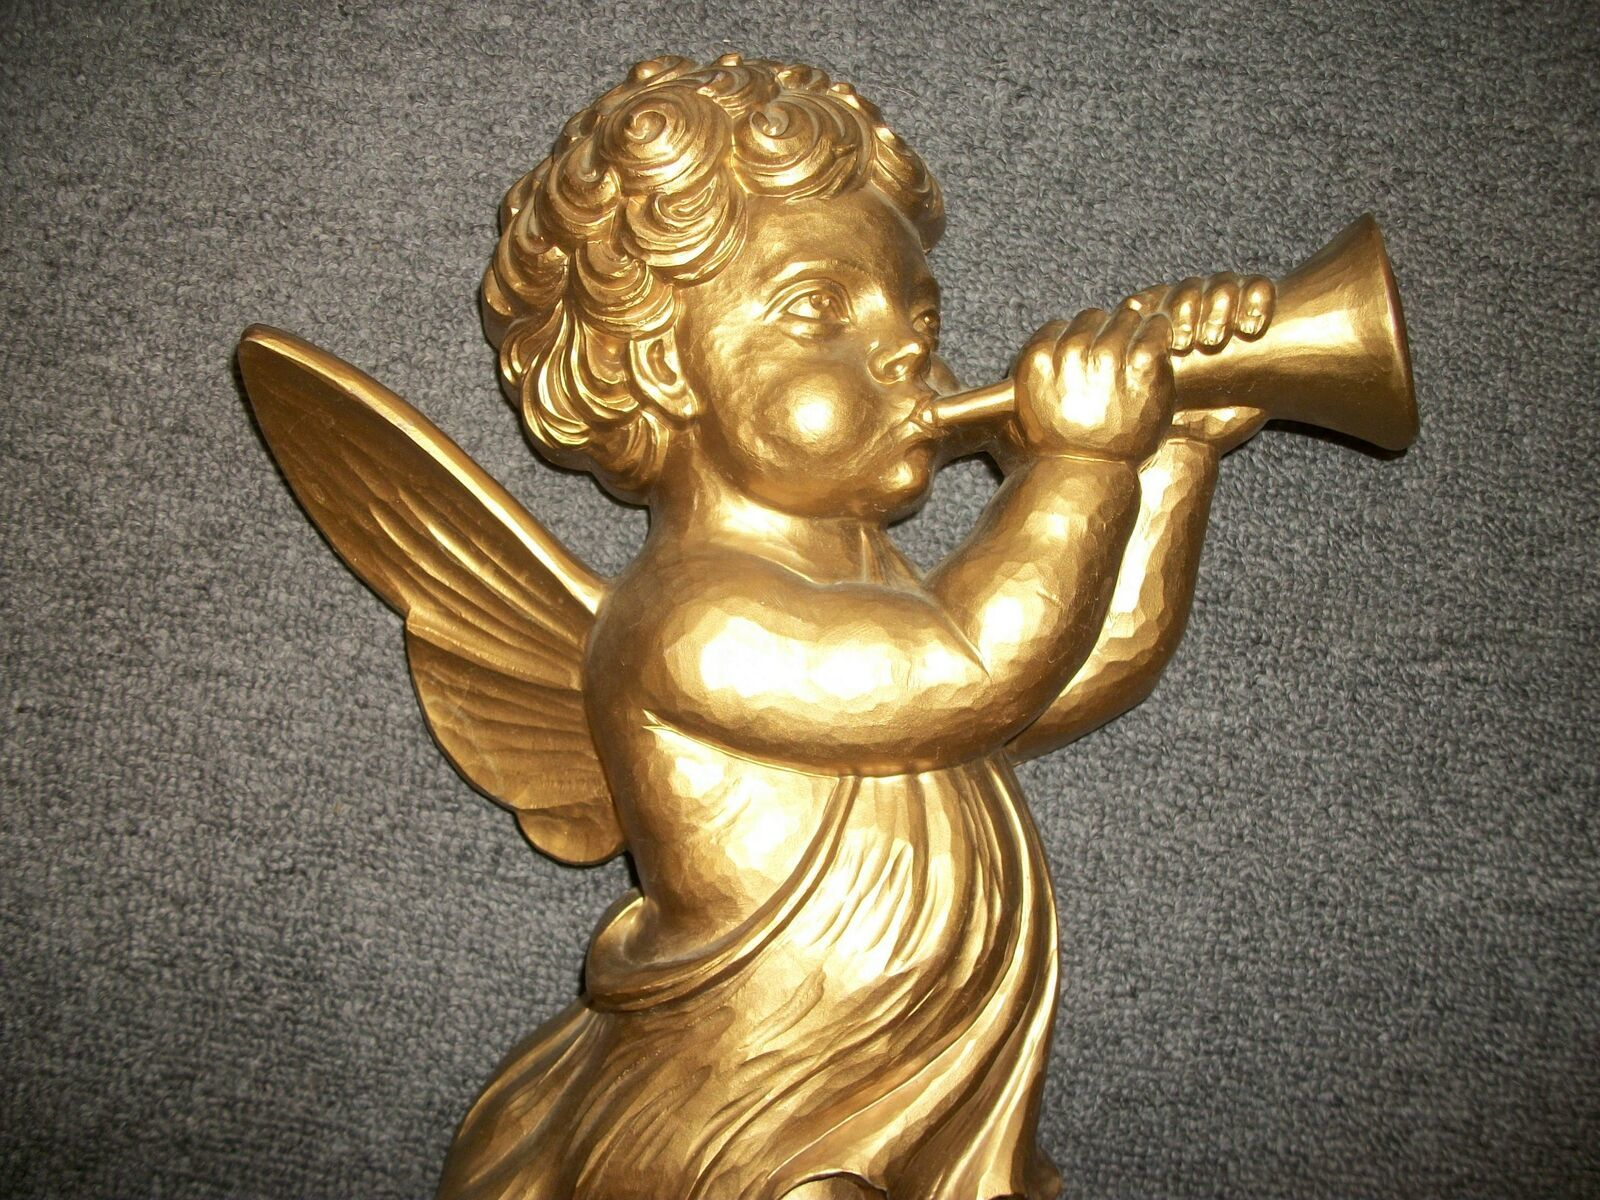 SYROCO Cherub with Horn Wall Hanging # 4775A Gold Tone Vintage '60s